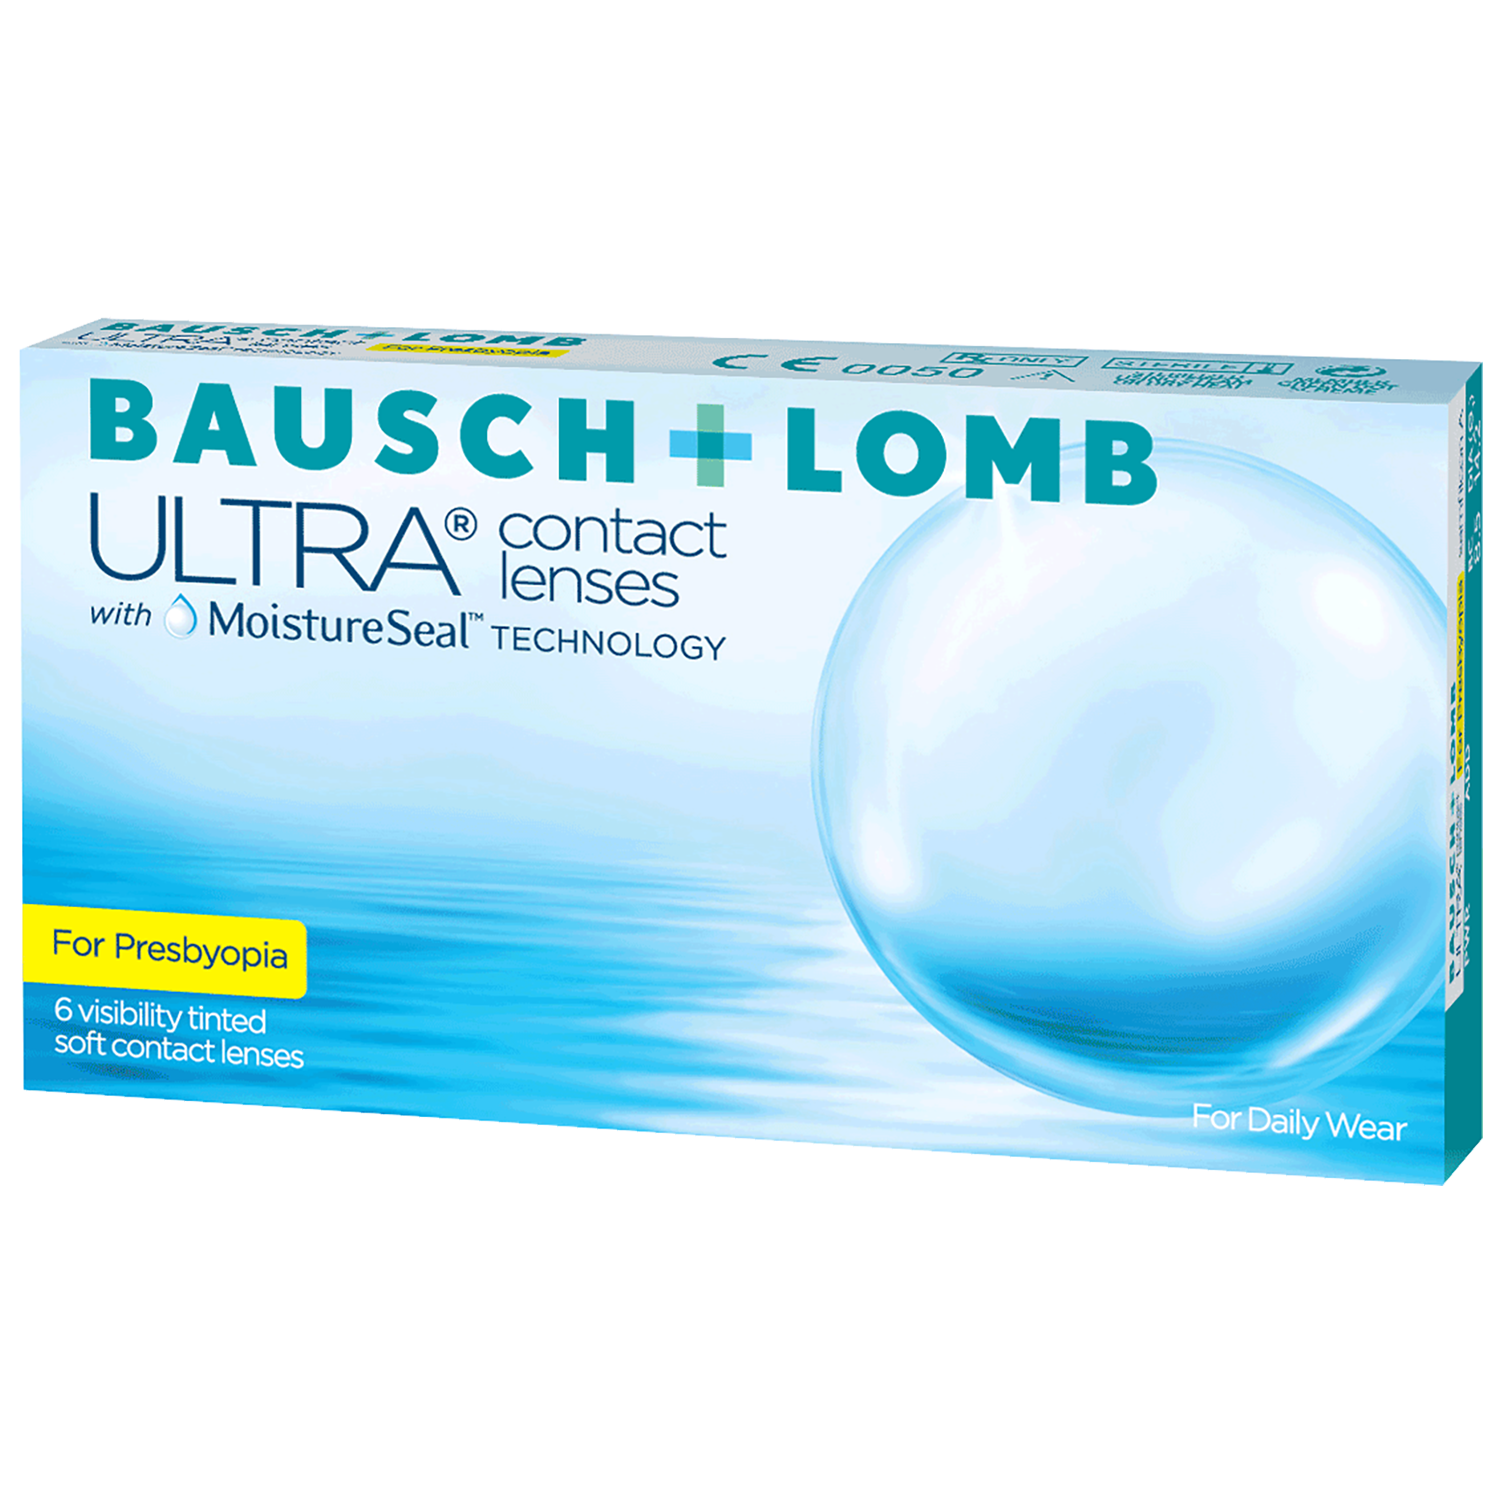 Bausch + Lomb ULTRA for Presbyopia